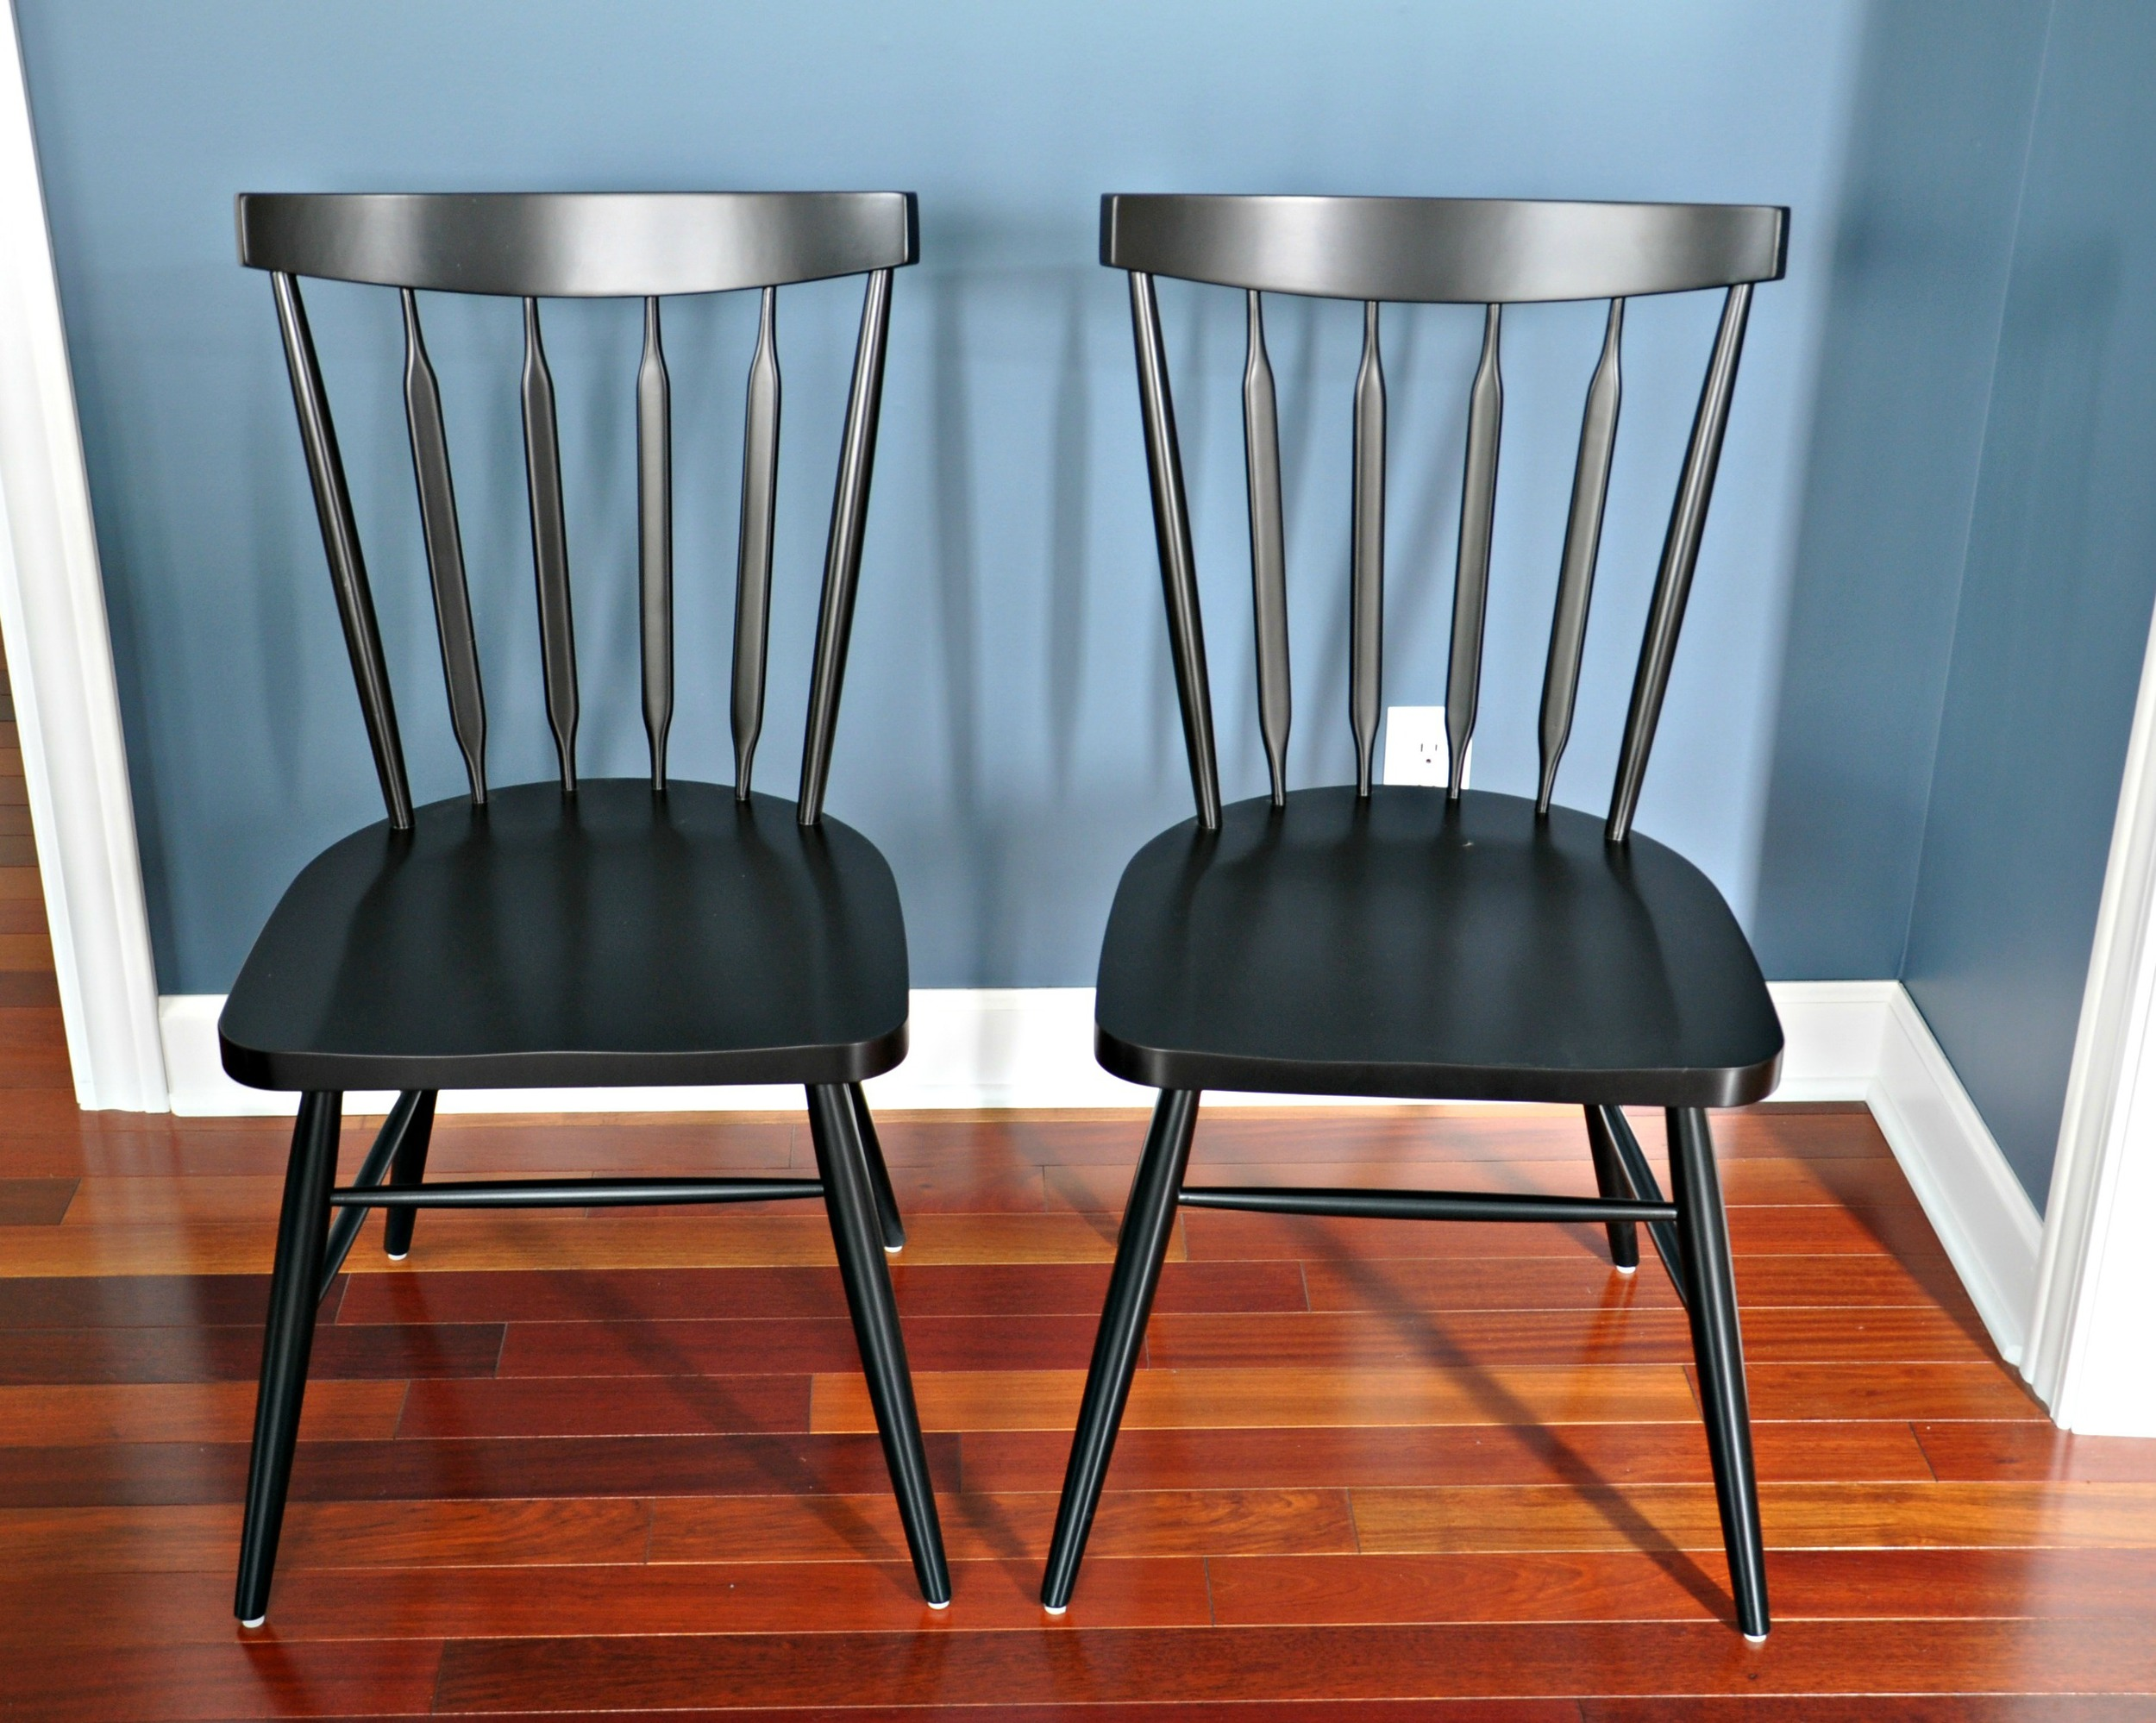 Crate and Barrel Willa Raven Dining Chair.jpg